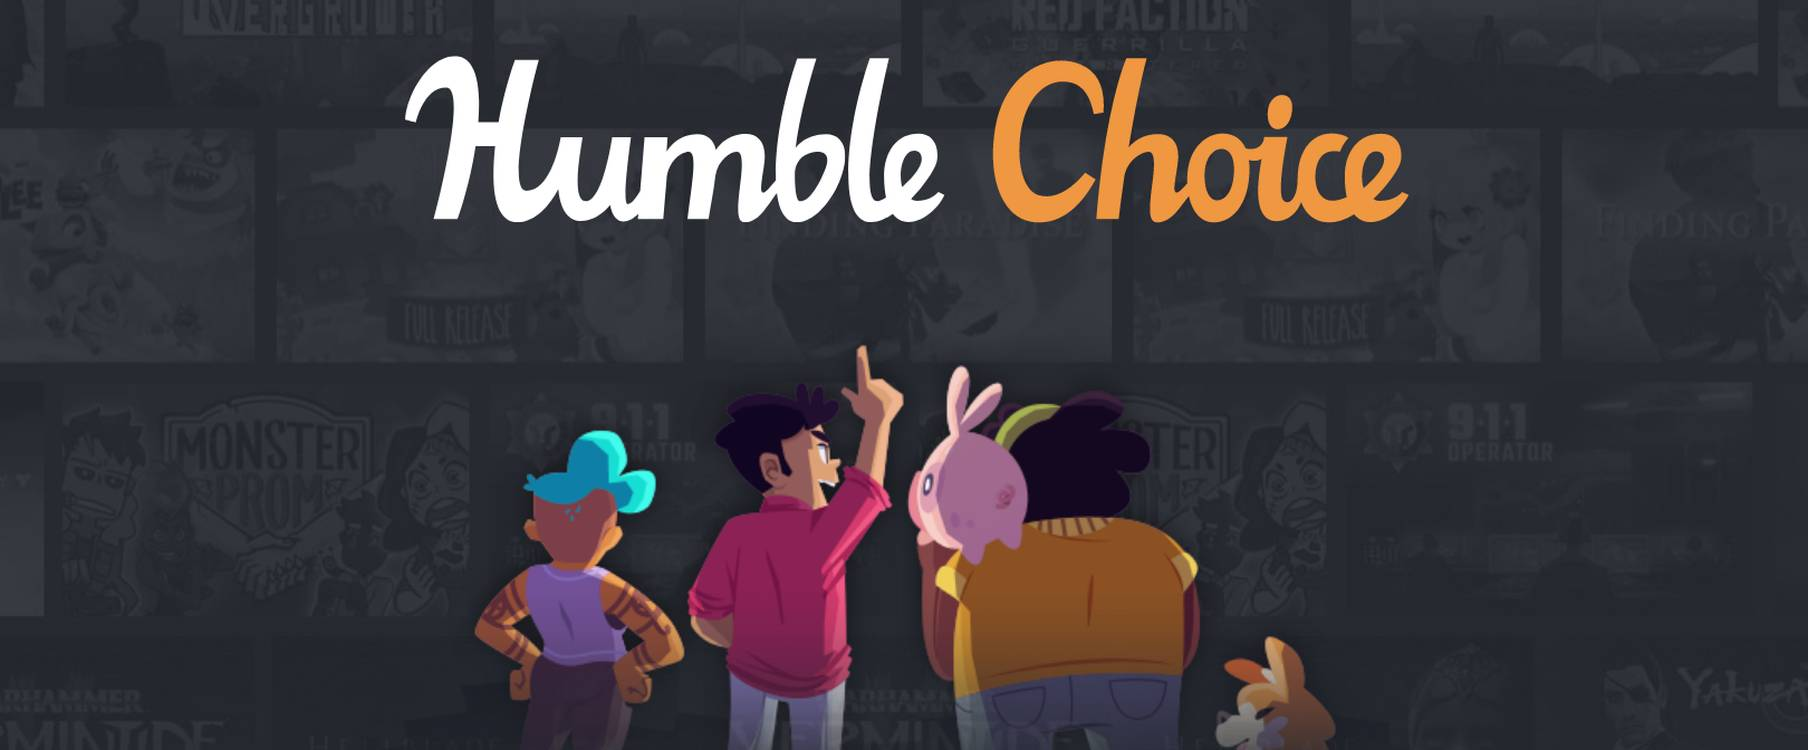 Humble Monthly Subscription Evolving Into Pricier New Service Humble Choice